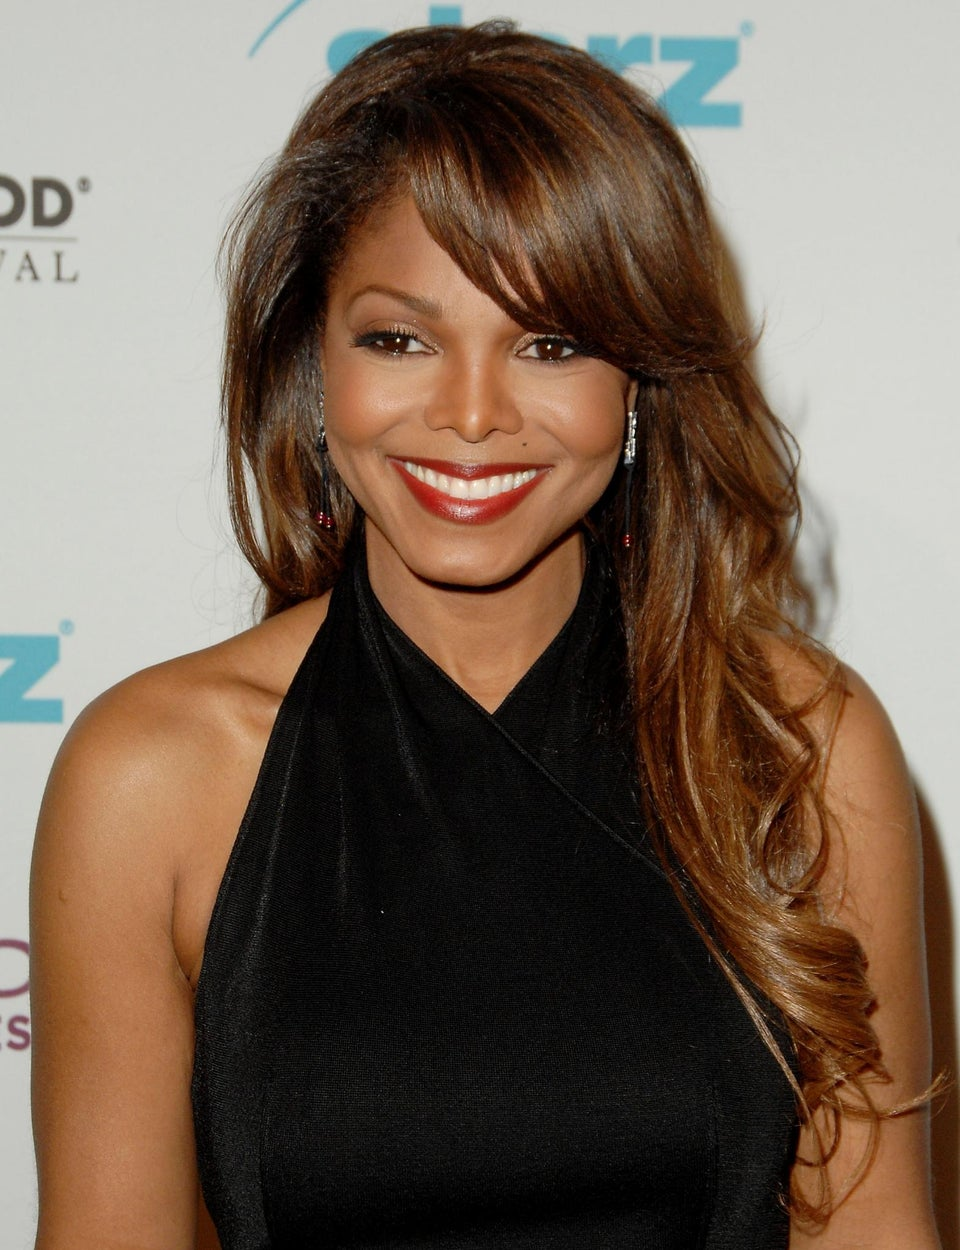 Janet Jackson Announces New Music and World Tour